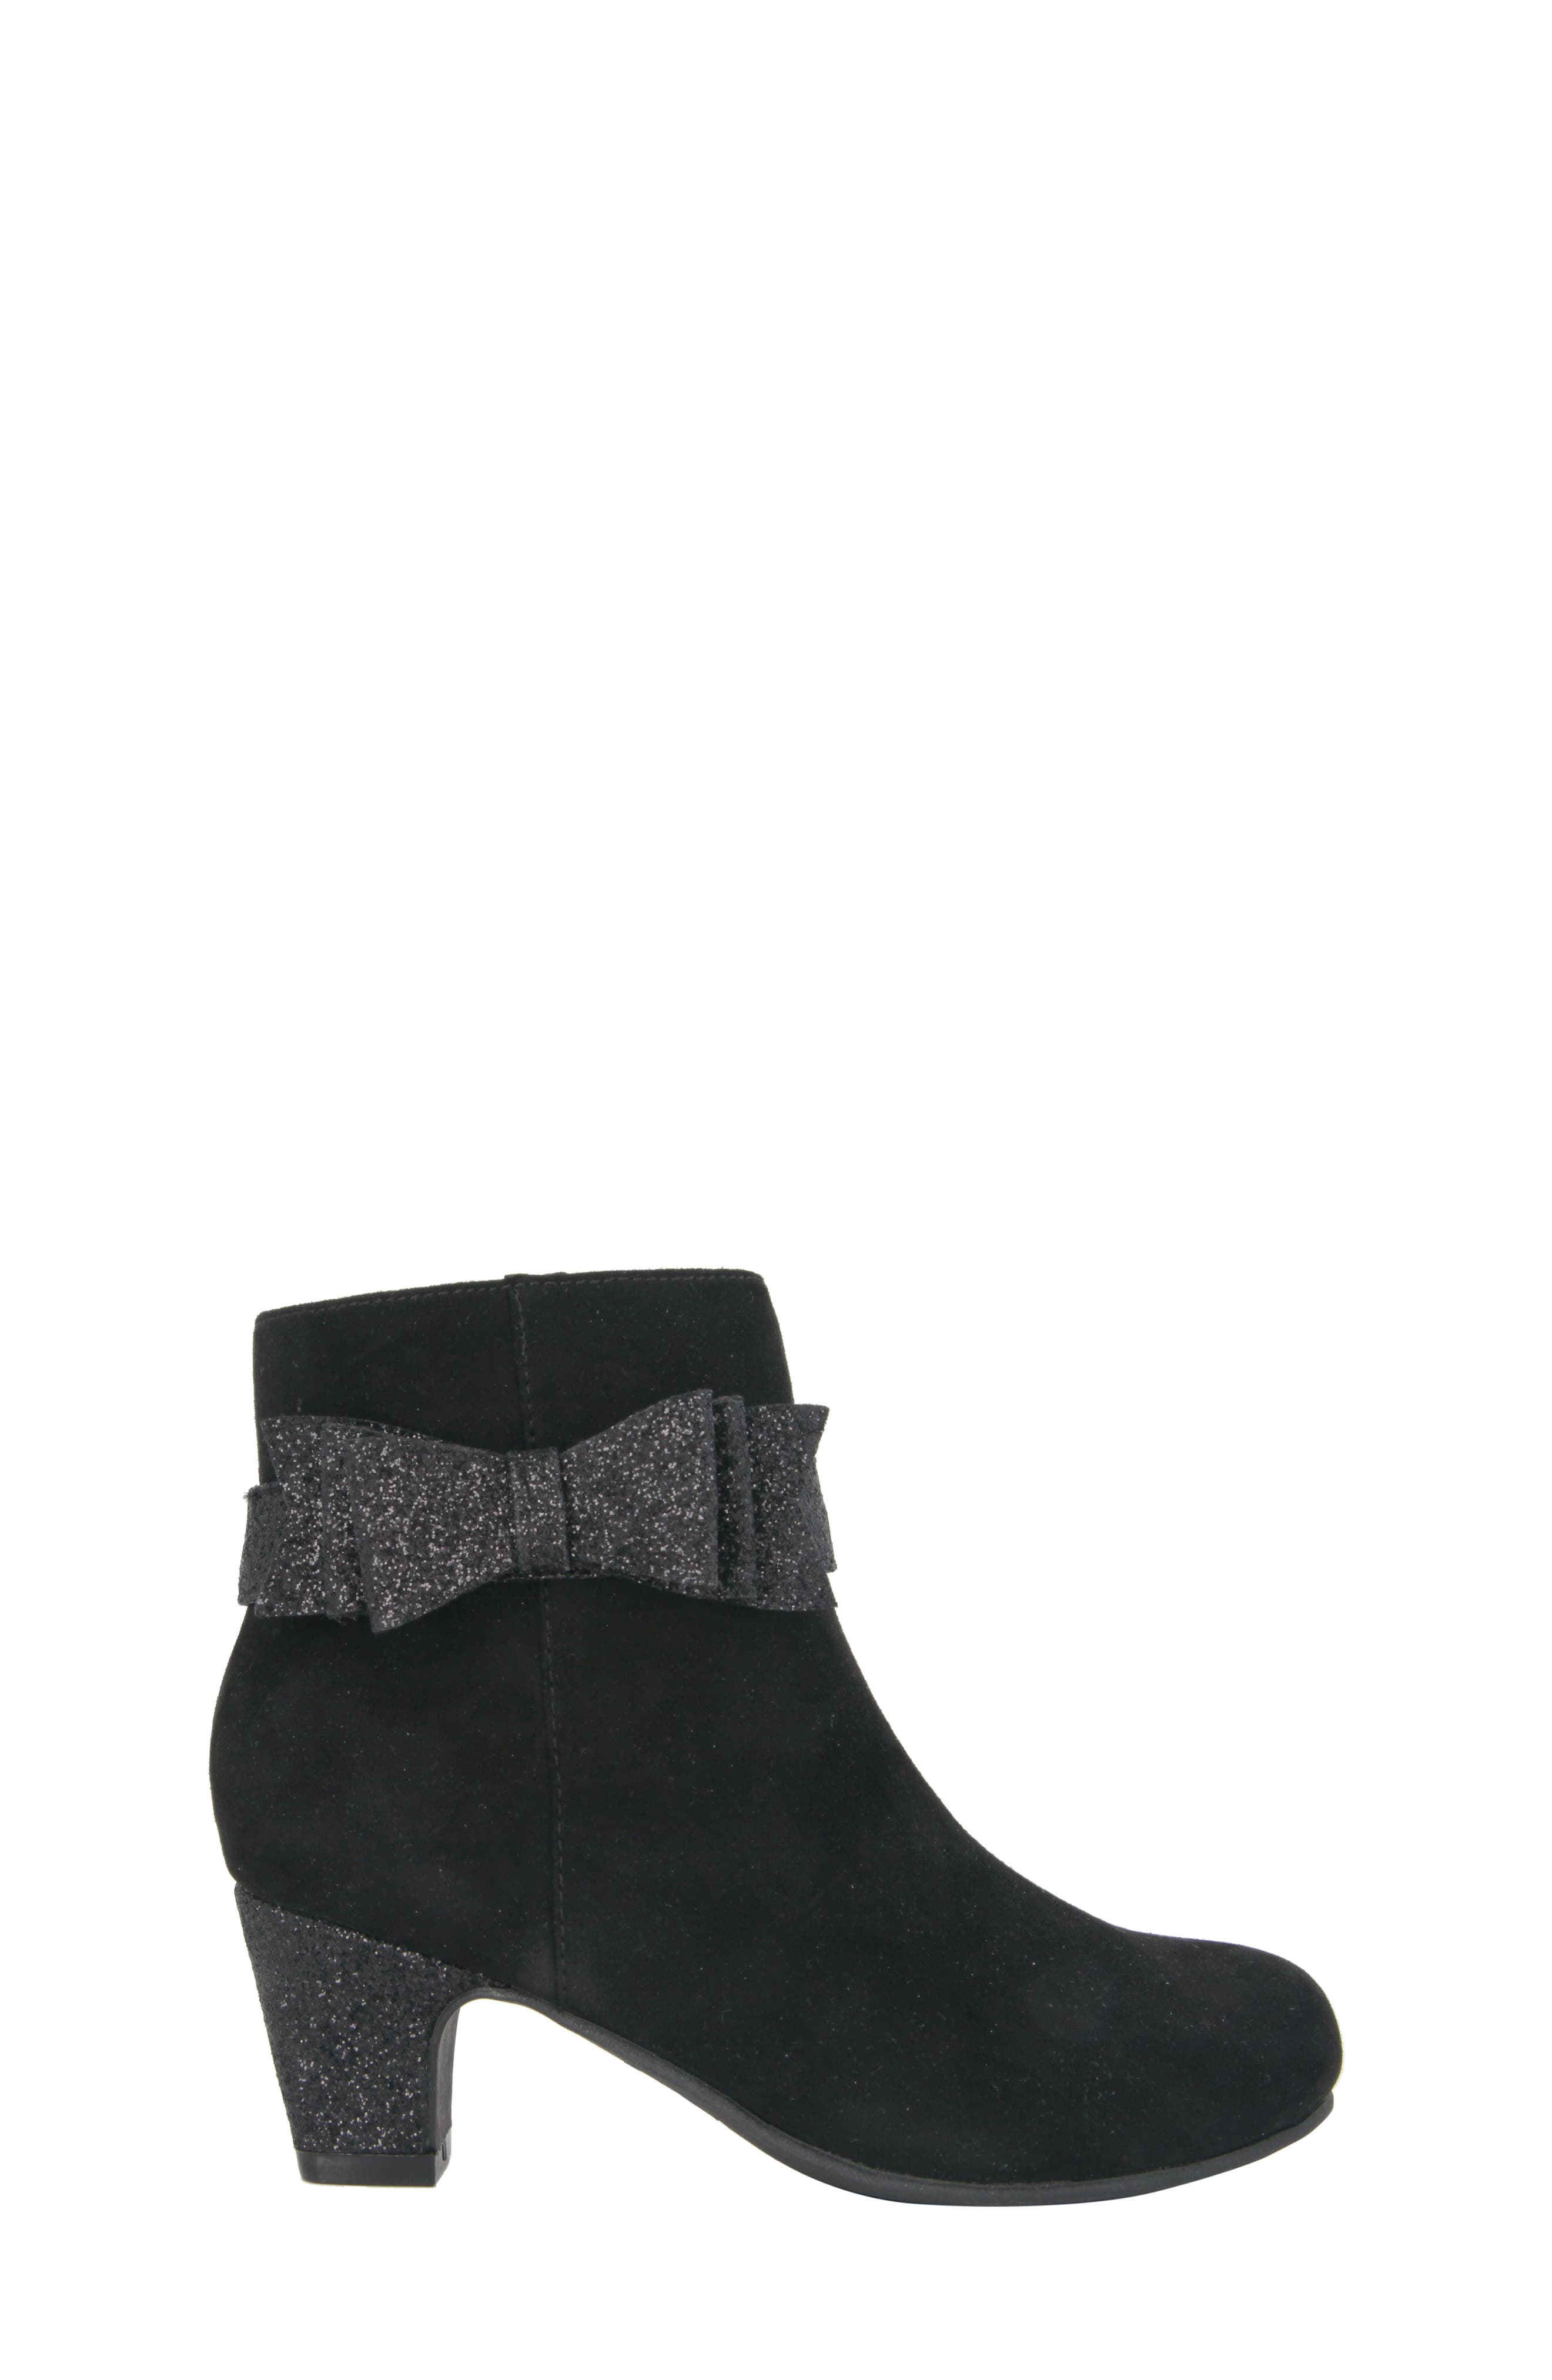 Glitter Bow Bootie,                             Alternate thumbnail 3, color,                             Black Suede/ Glitter